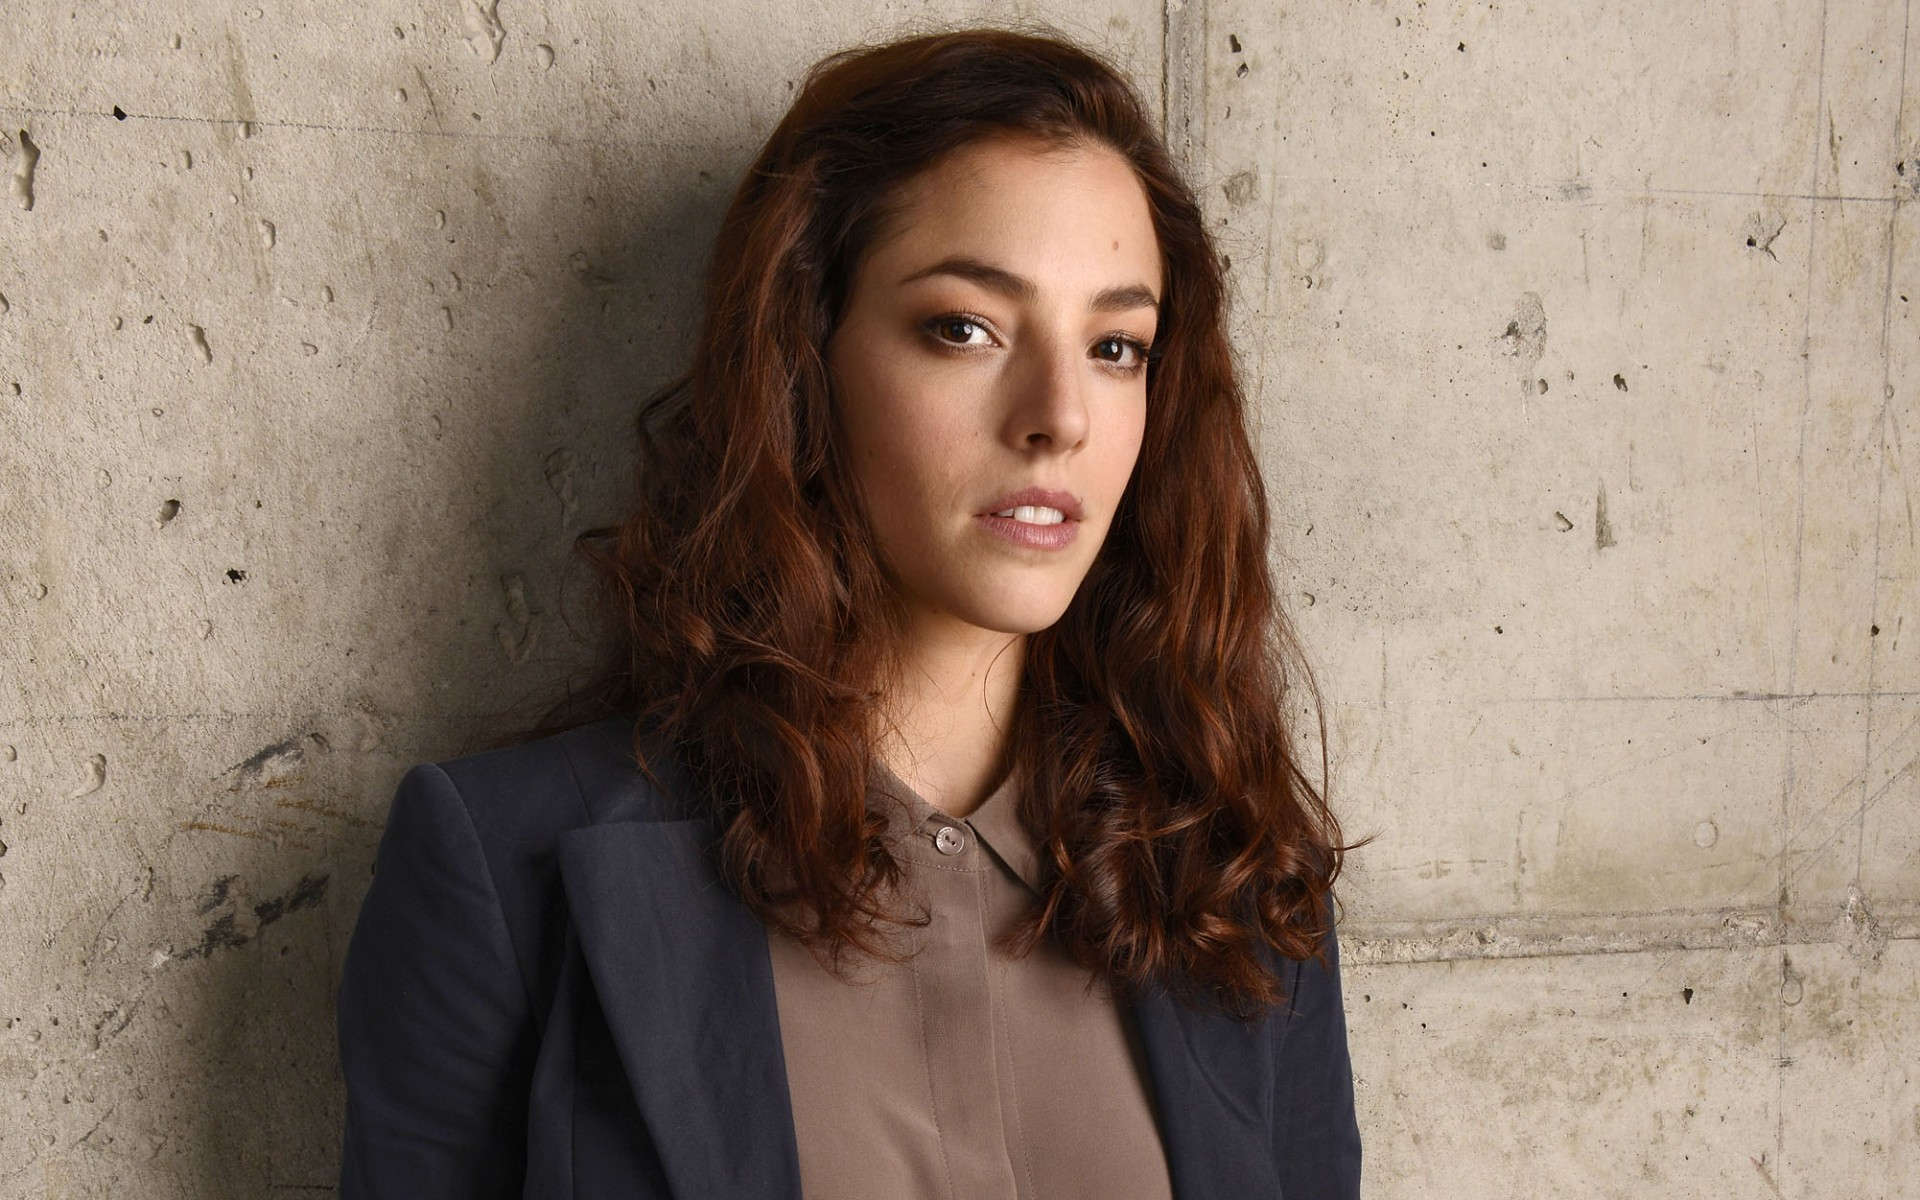 olivia thirlby wallpapers images photos pictures backgrounds